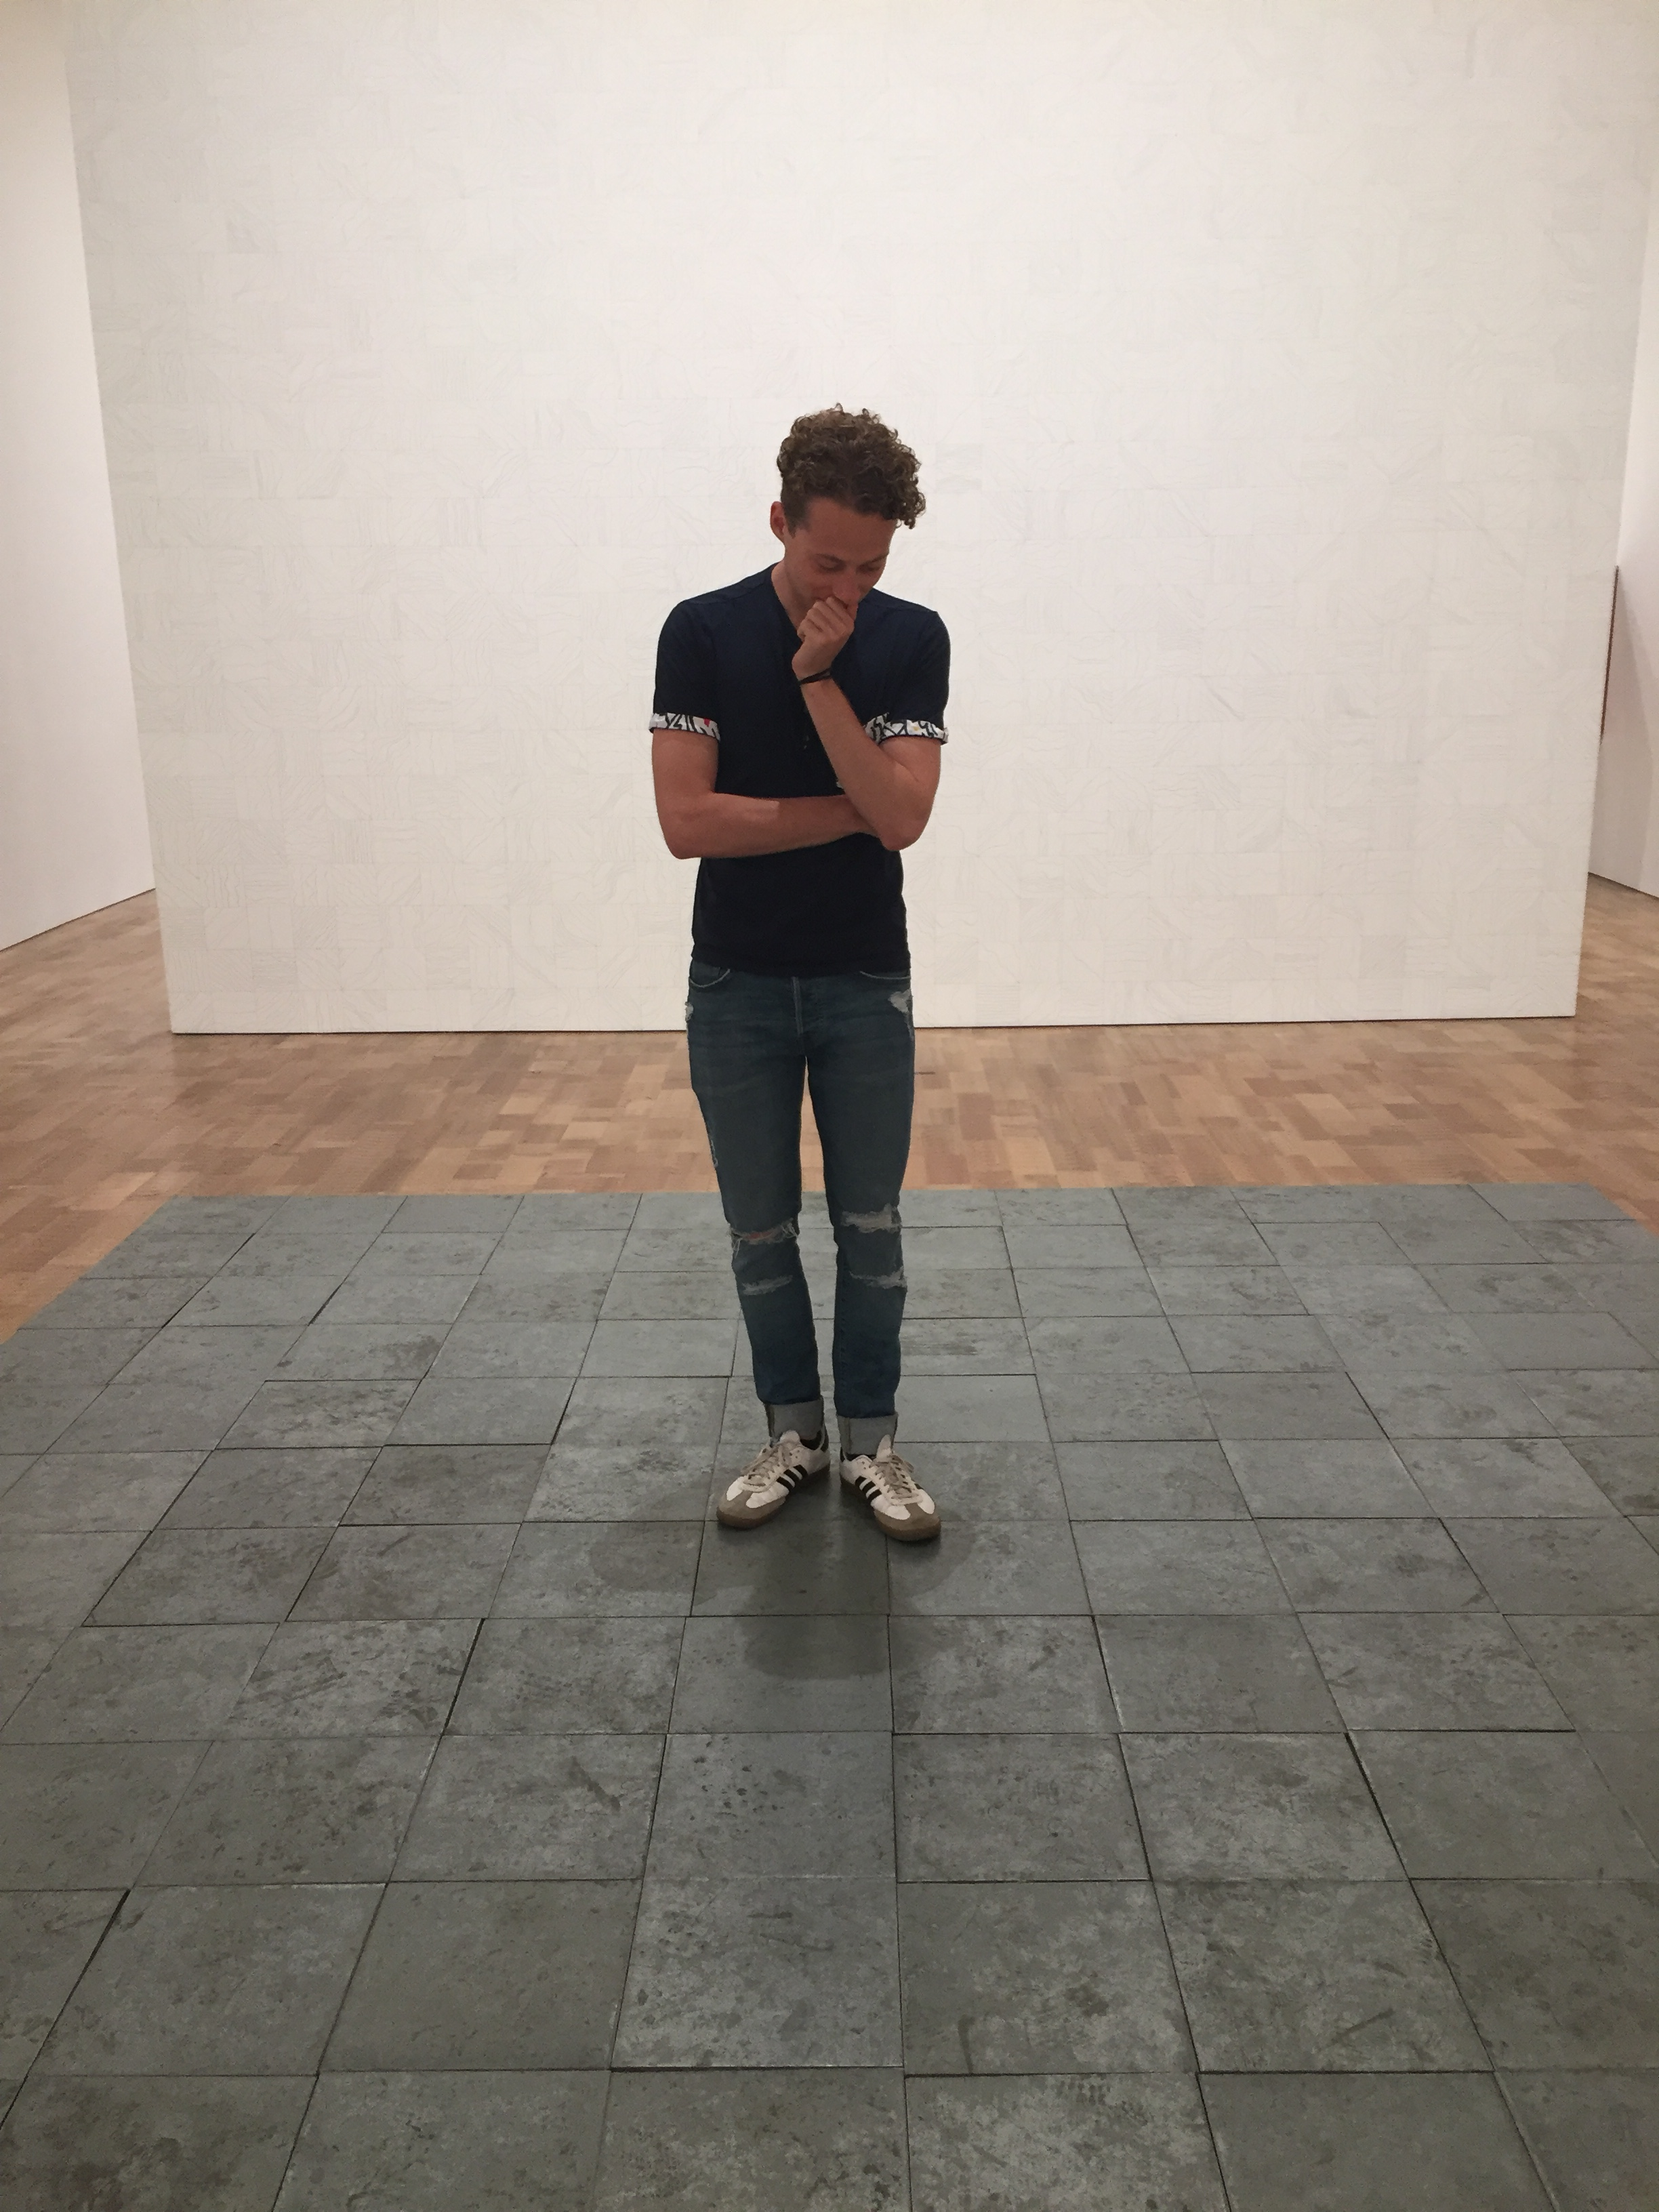 Student Michael Basiewicz visiting the Art Institute of Chicago